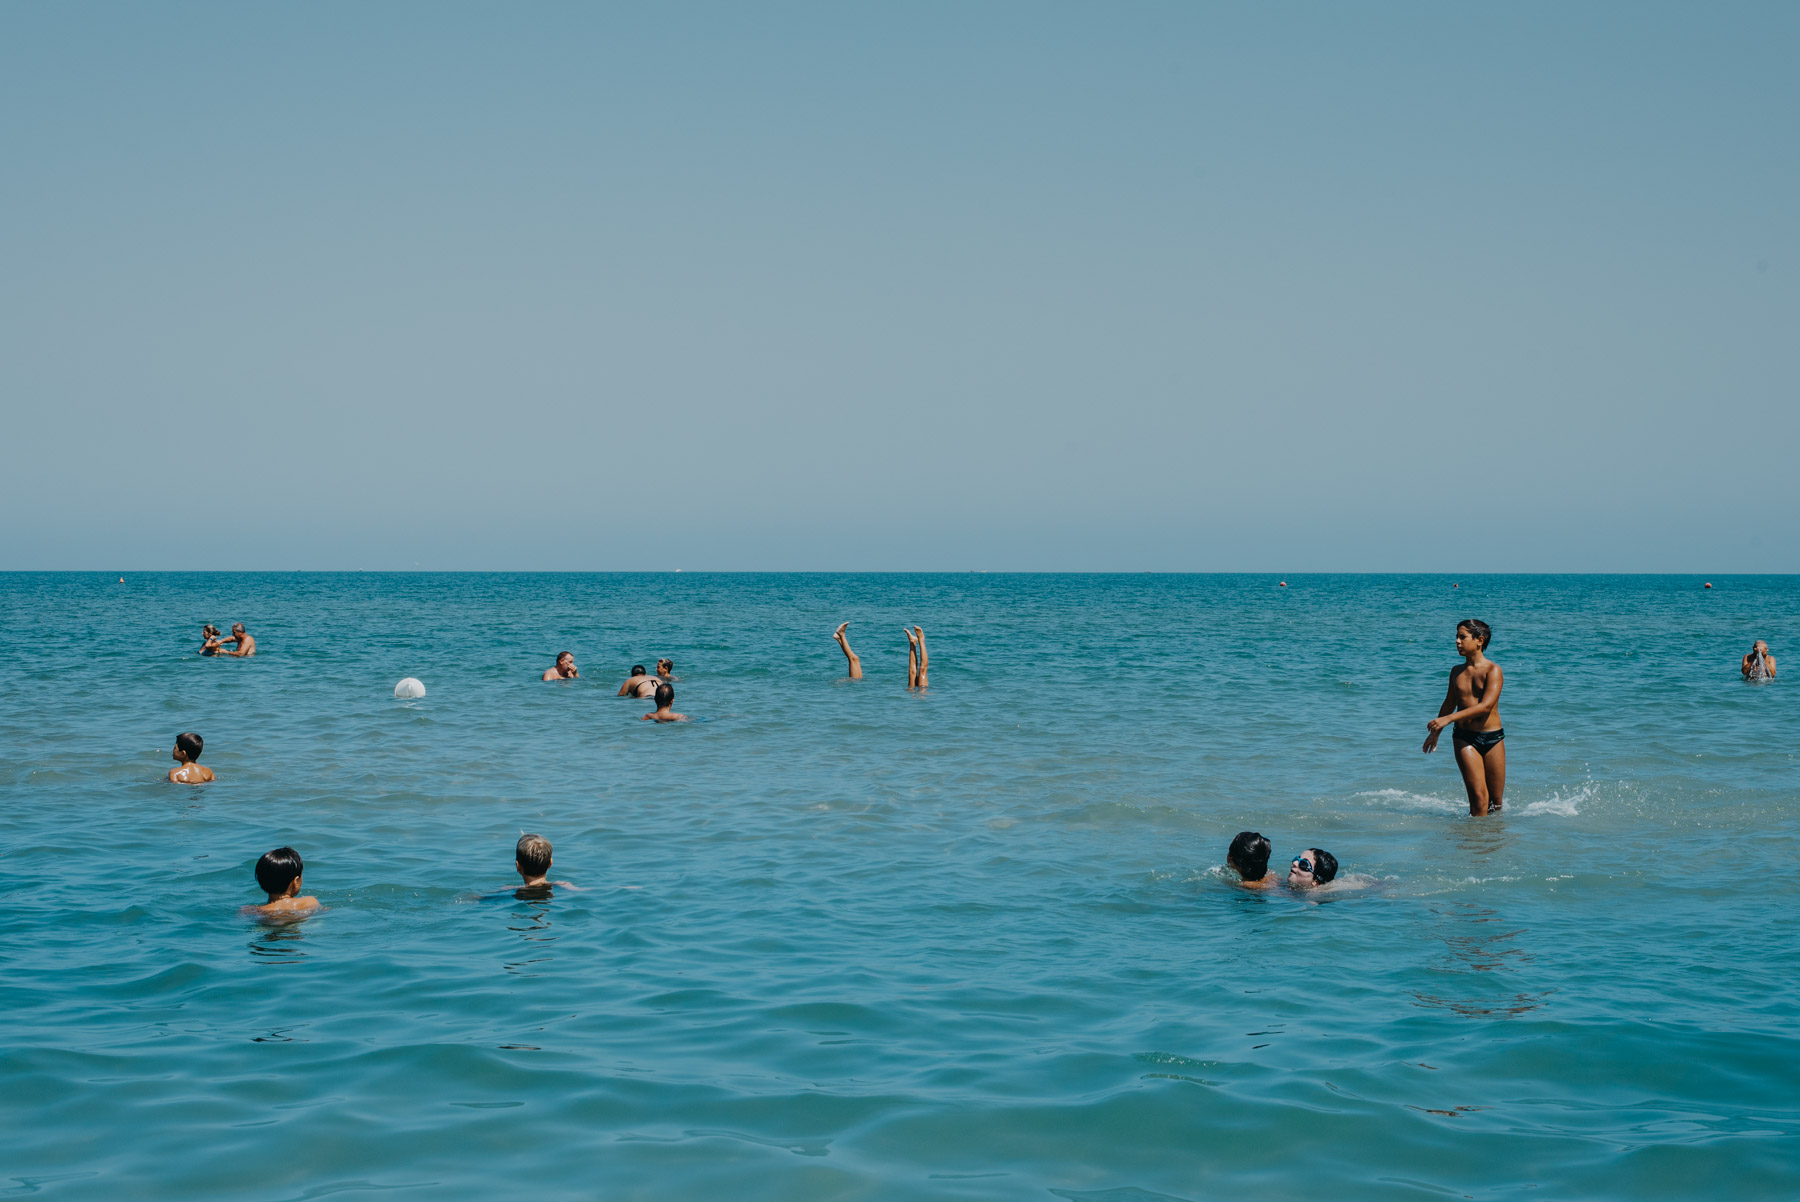 People anche children playing at the beach in the blue sea in the mediterranean sea in the city of Barletta, Apulia